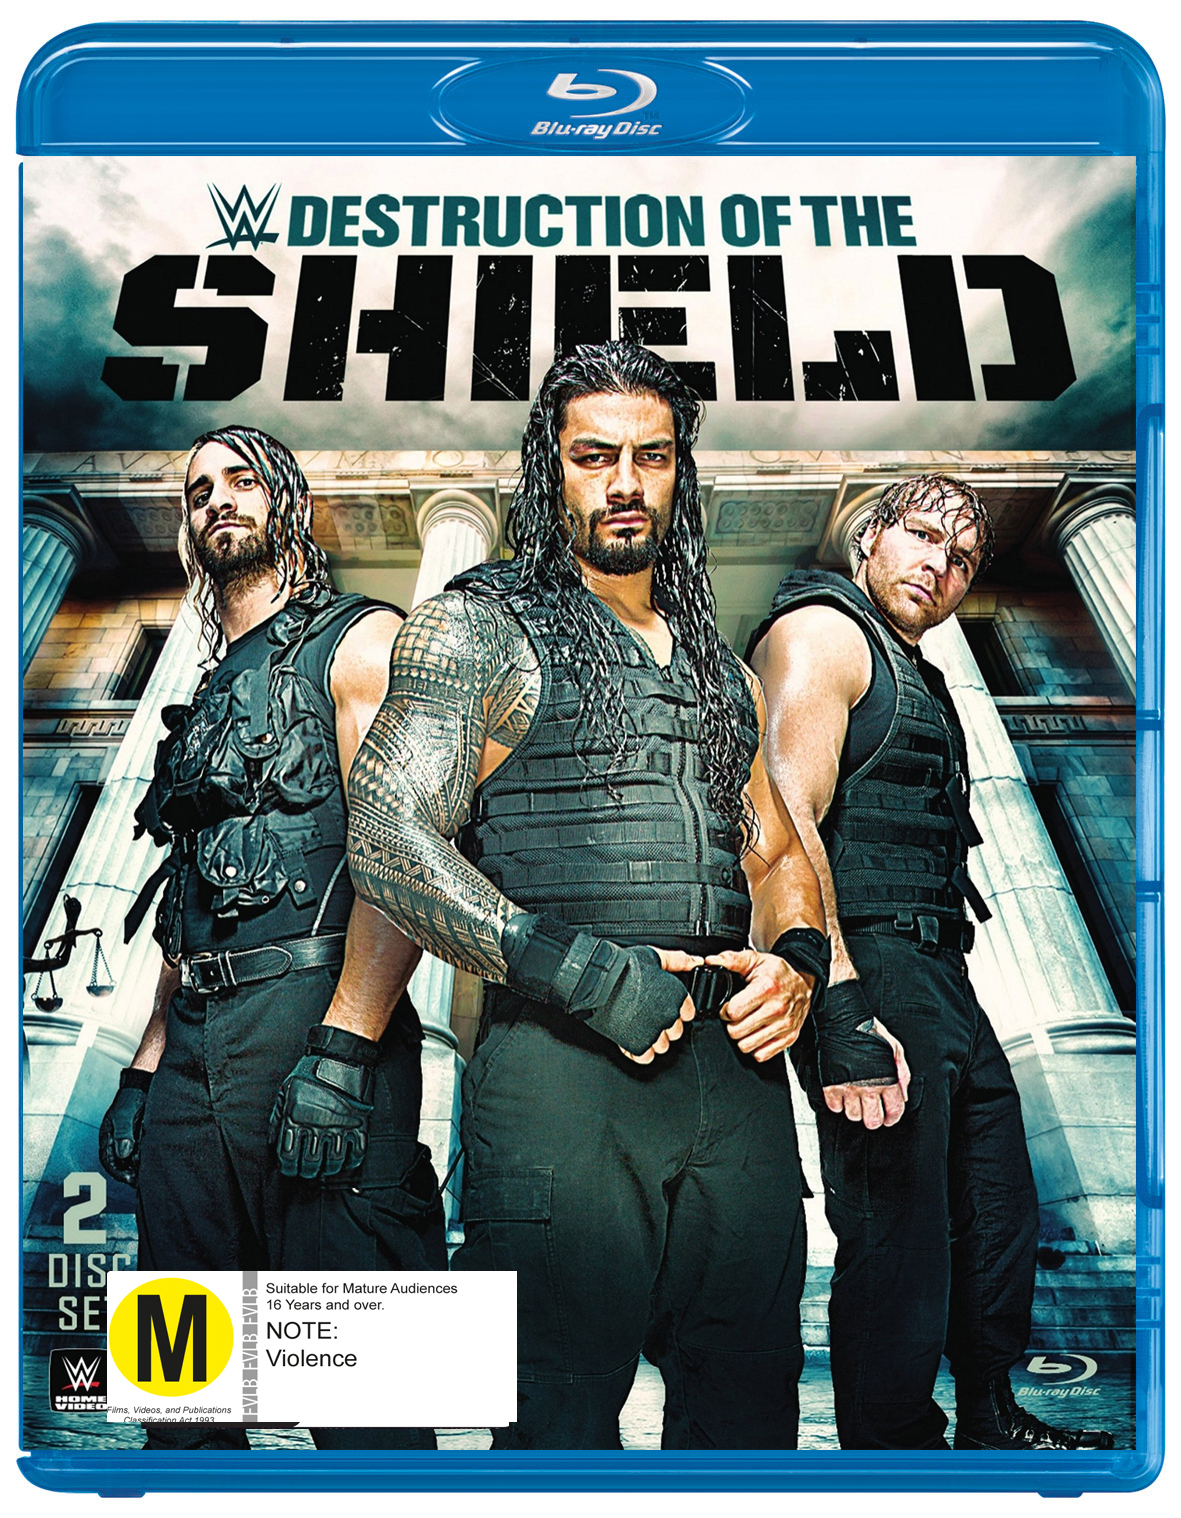 WWE - The Destruction Of The Shield on Blu-ray image